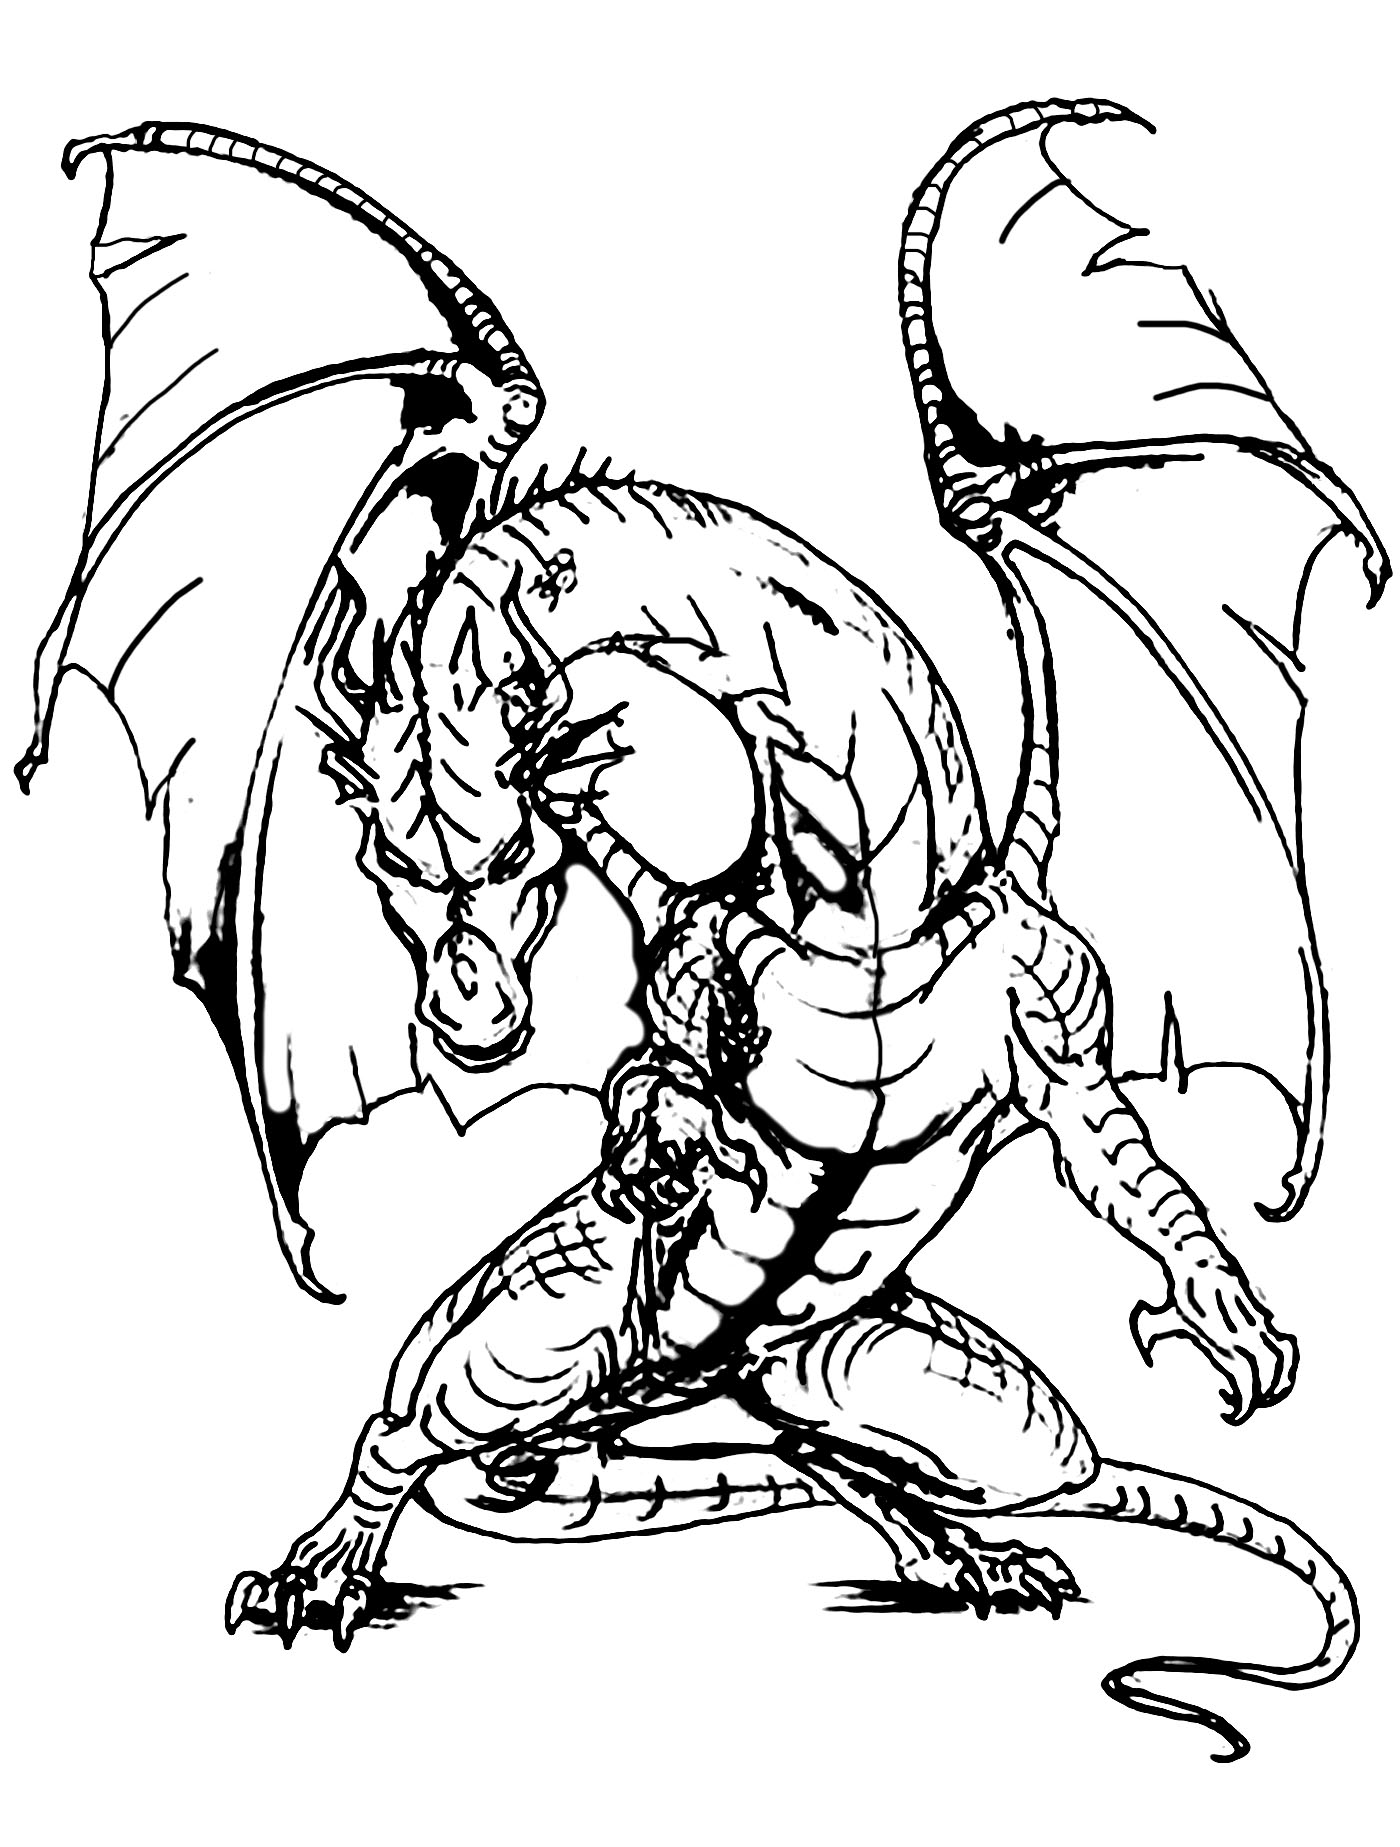 dragon coloring pages dragon coloring pages printable activity shelter coloring dragon pages